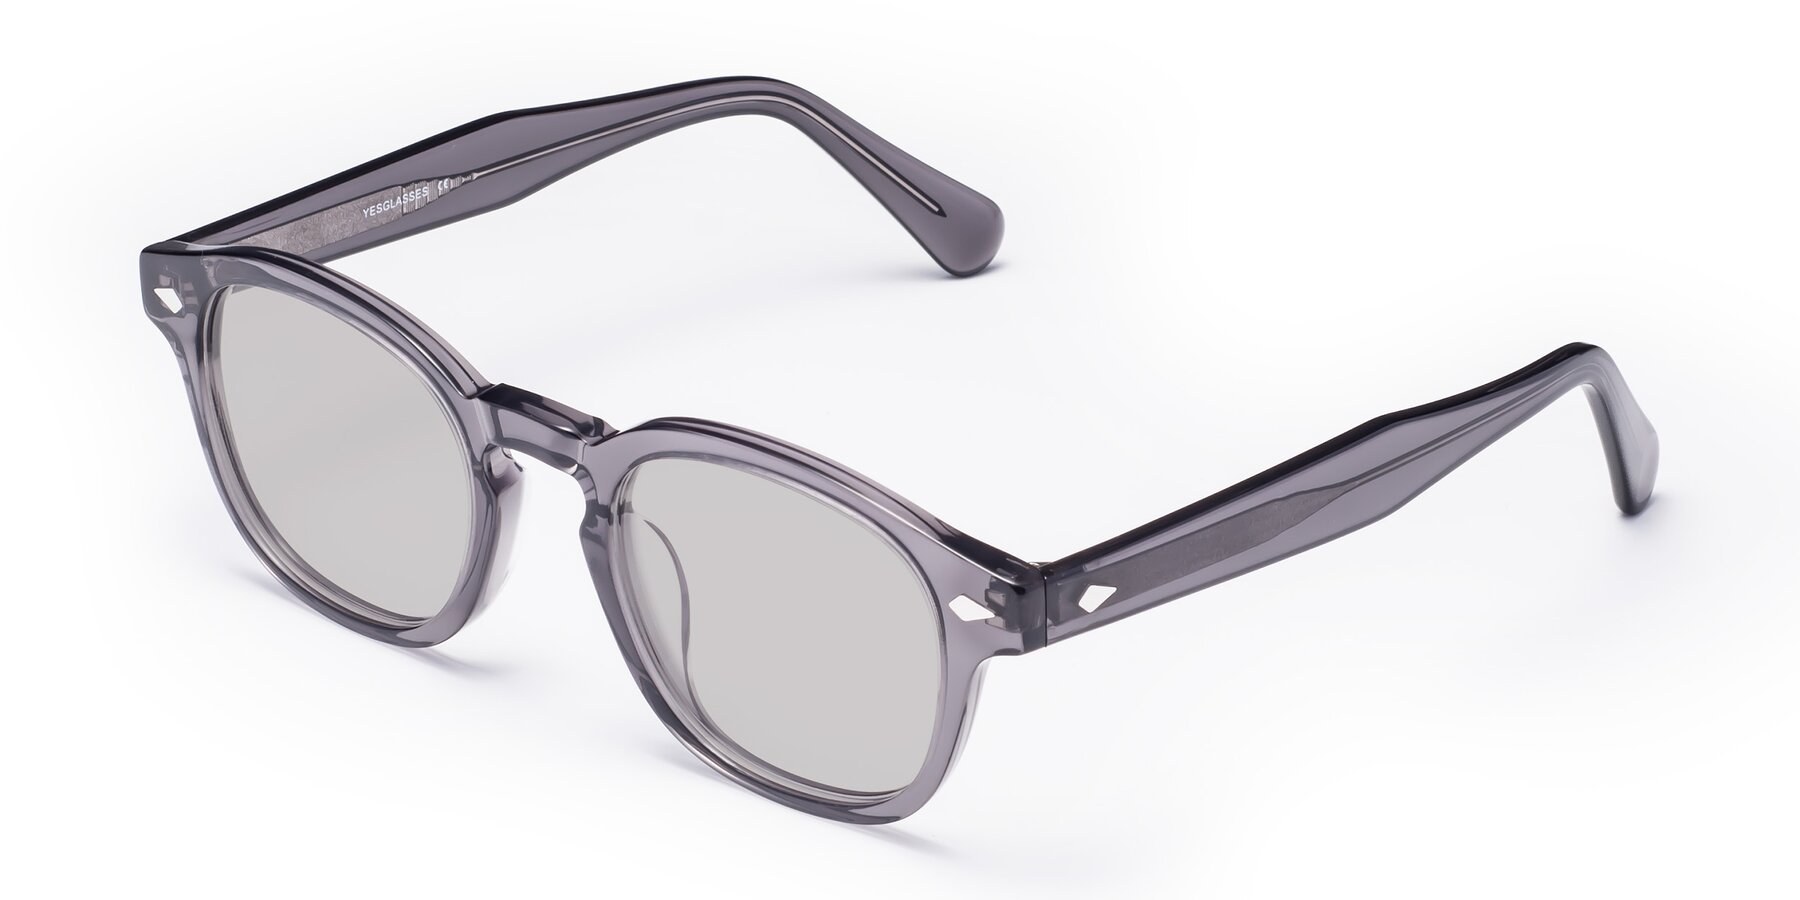 Angle of WALL-E in Translucent Gray with Light Gray Tinted Lenses